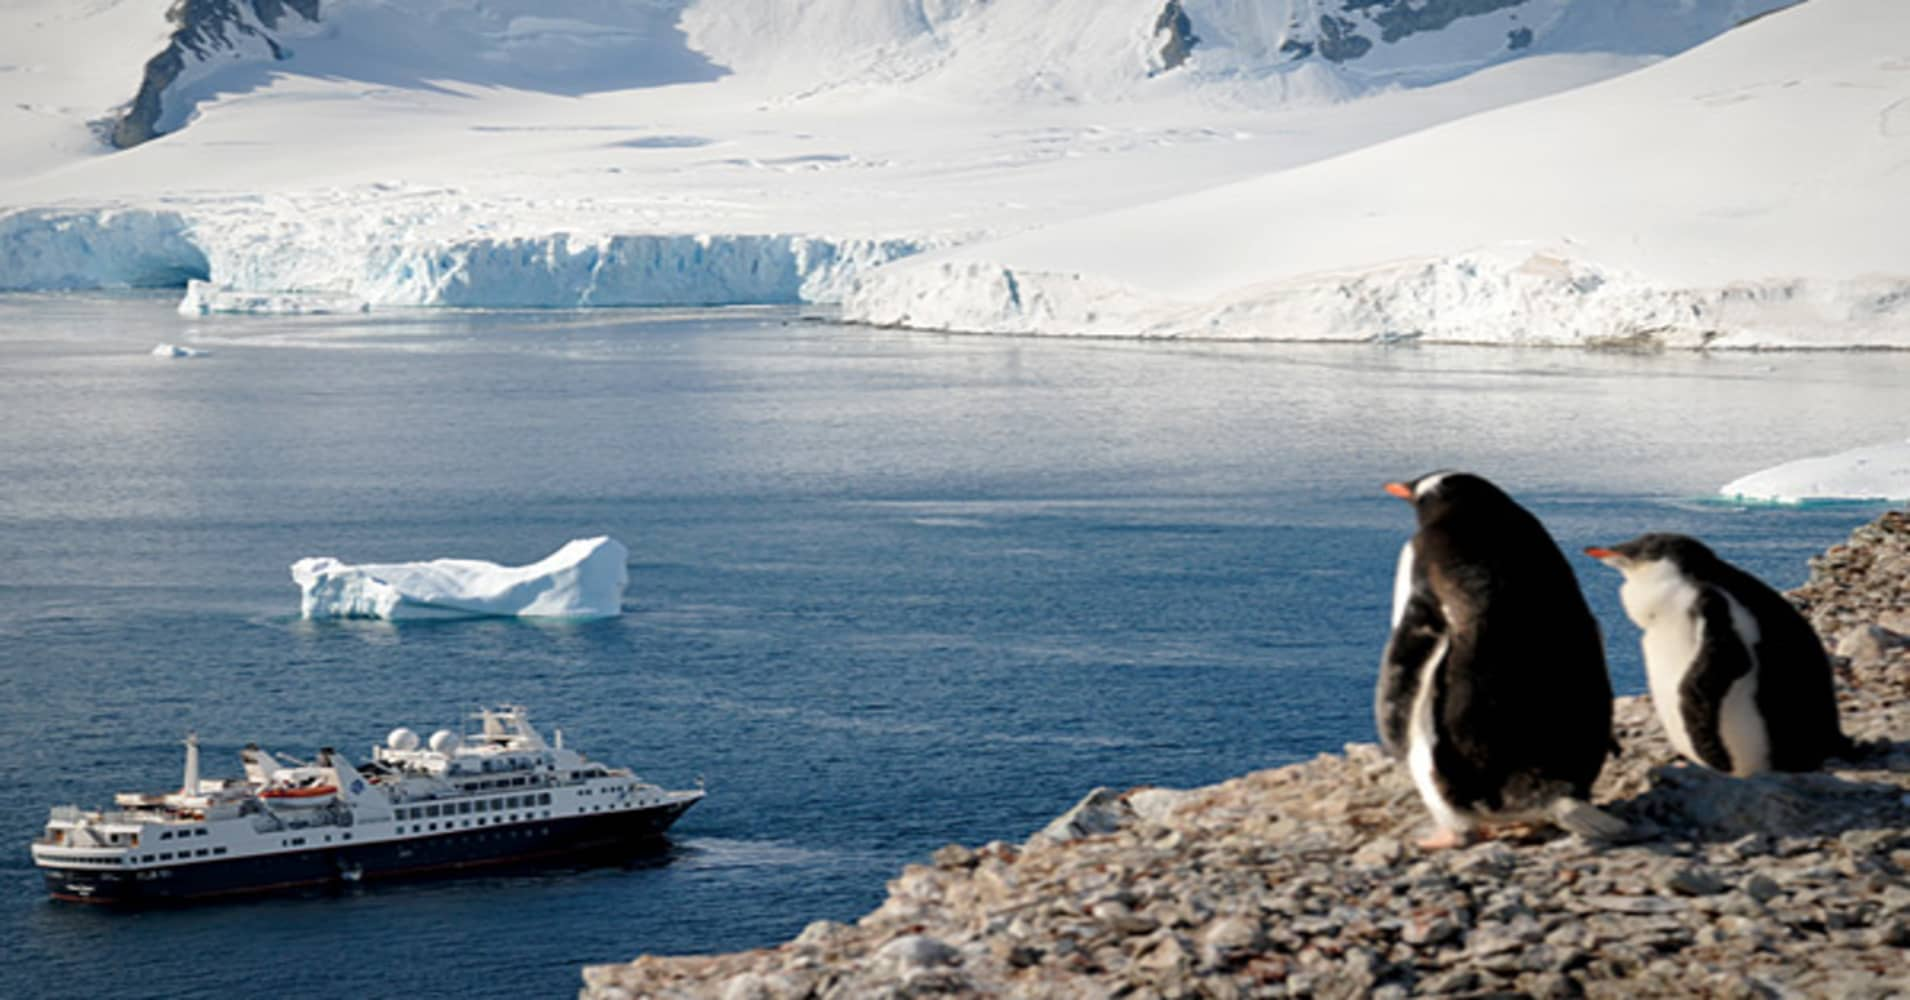 $8,799 per person for a 10-day voyage to $14,799 for 17 days.Earth's southernmost continent has no permanent residents other than polar bears, penguins, and whales, and no hotels. But you can get close to its glaciers by ship.  Silversea Expeditions' departs from Ushuaia, Argentina, a three-and-a-half hour flight from Buenos Aires.  The 354-foot Explorer brings along a marine biologist, historian and geologist to guide excursions to Deception Island (home to a collapsed volcano), Paradise Bay (